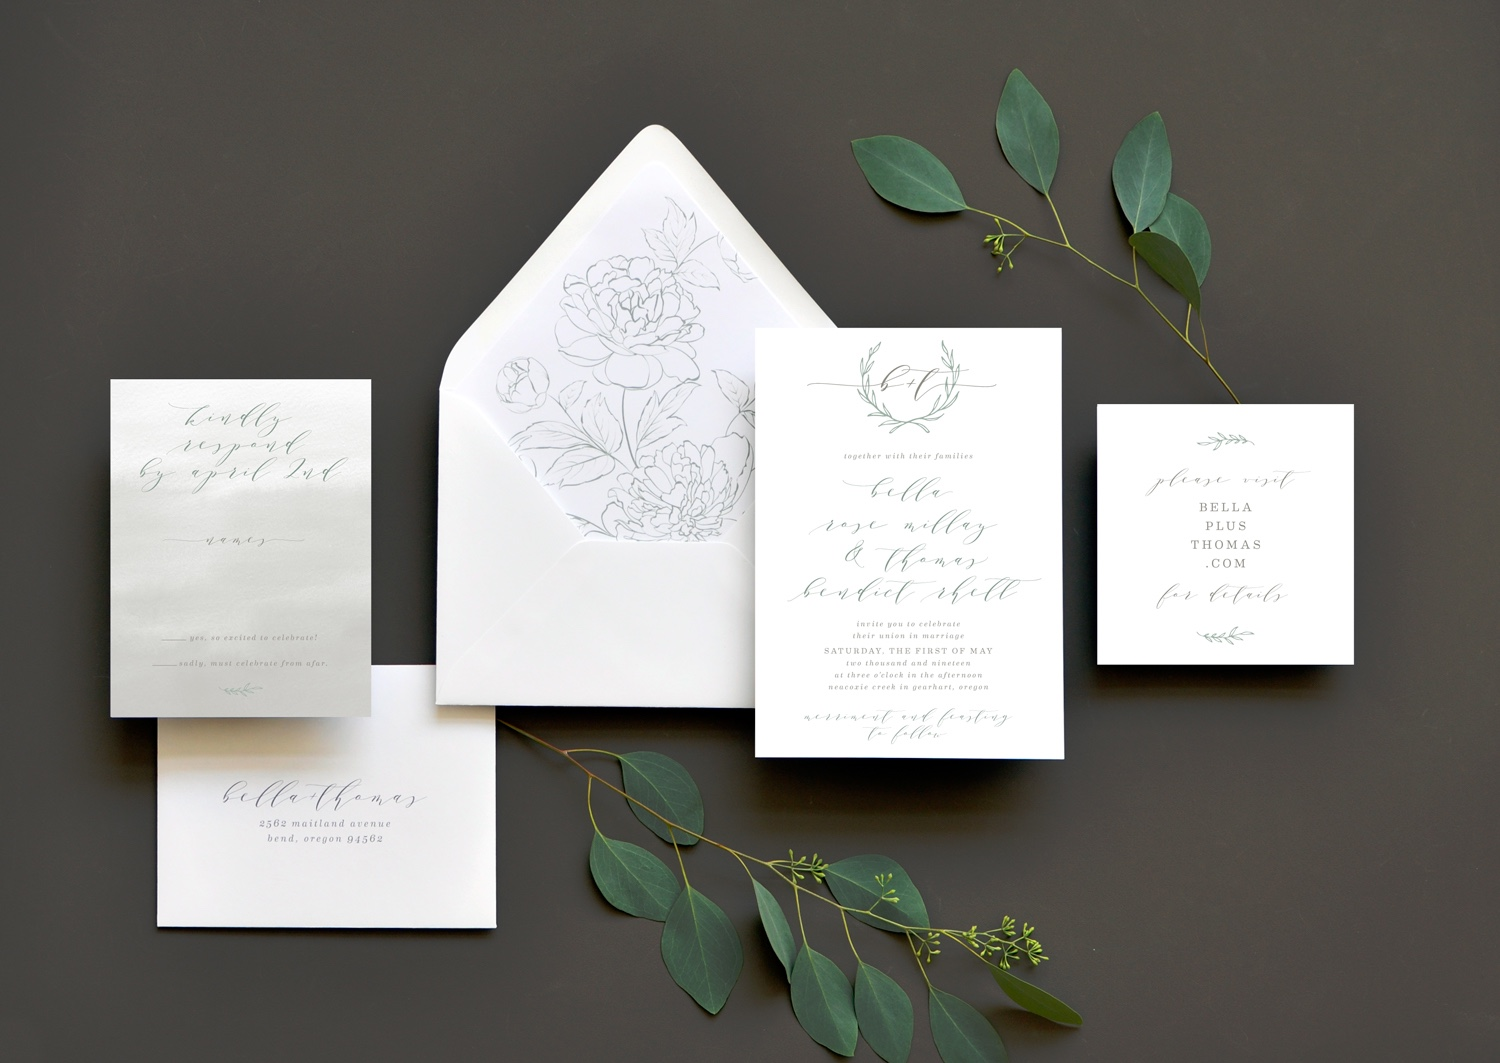 Heirloom Romance wedding invitation suite features delicate pencil sketch floral elements, a blend of lettering styles, and contemporary calligraphy.